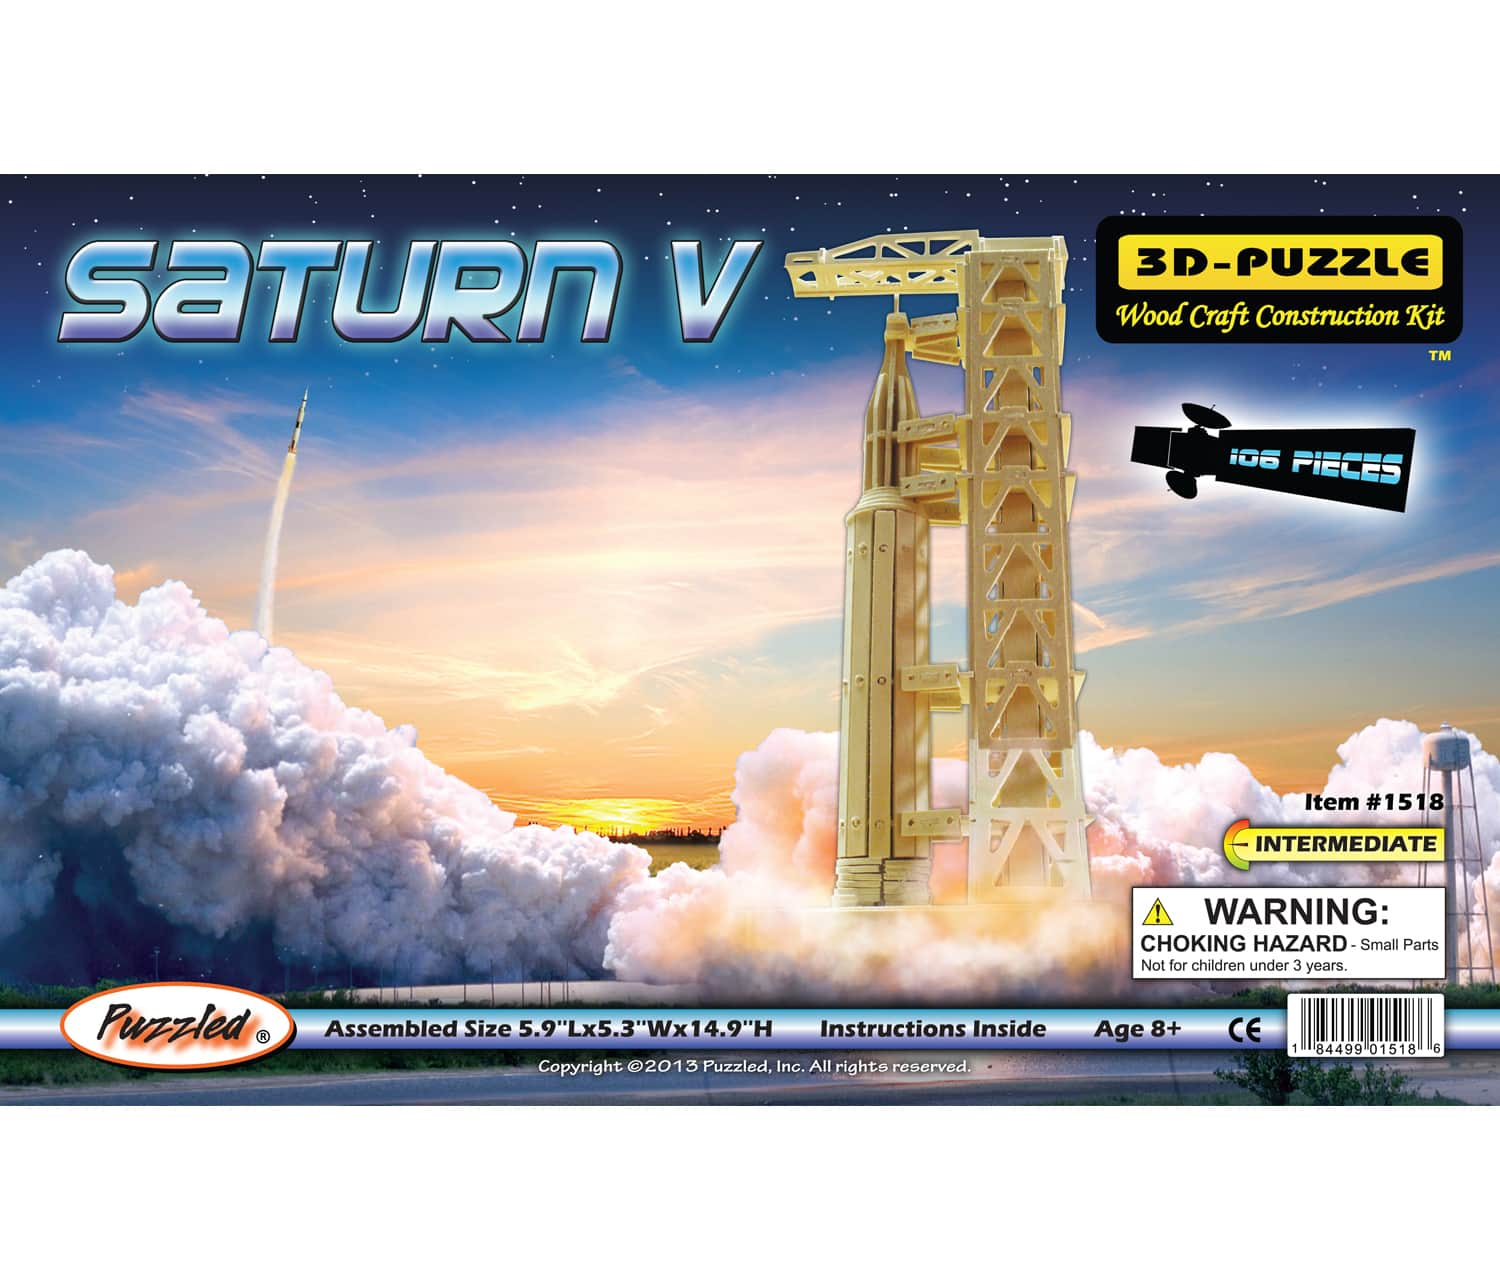 Saturn V 3D Puzzle,1518